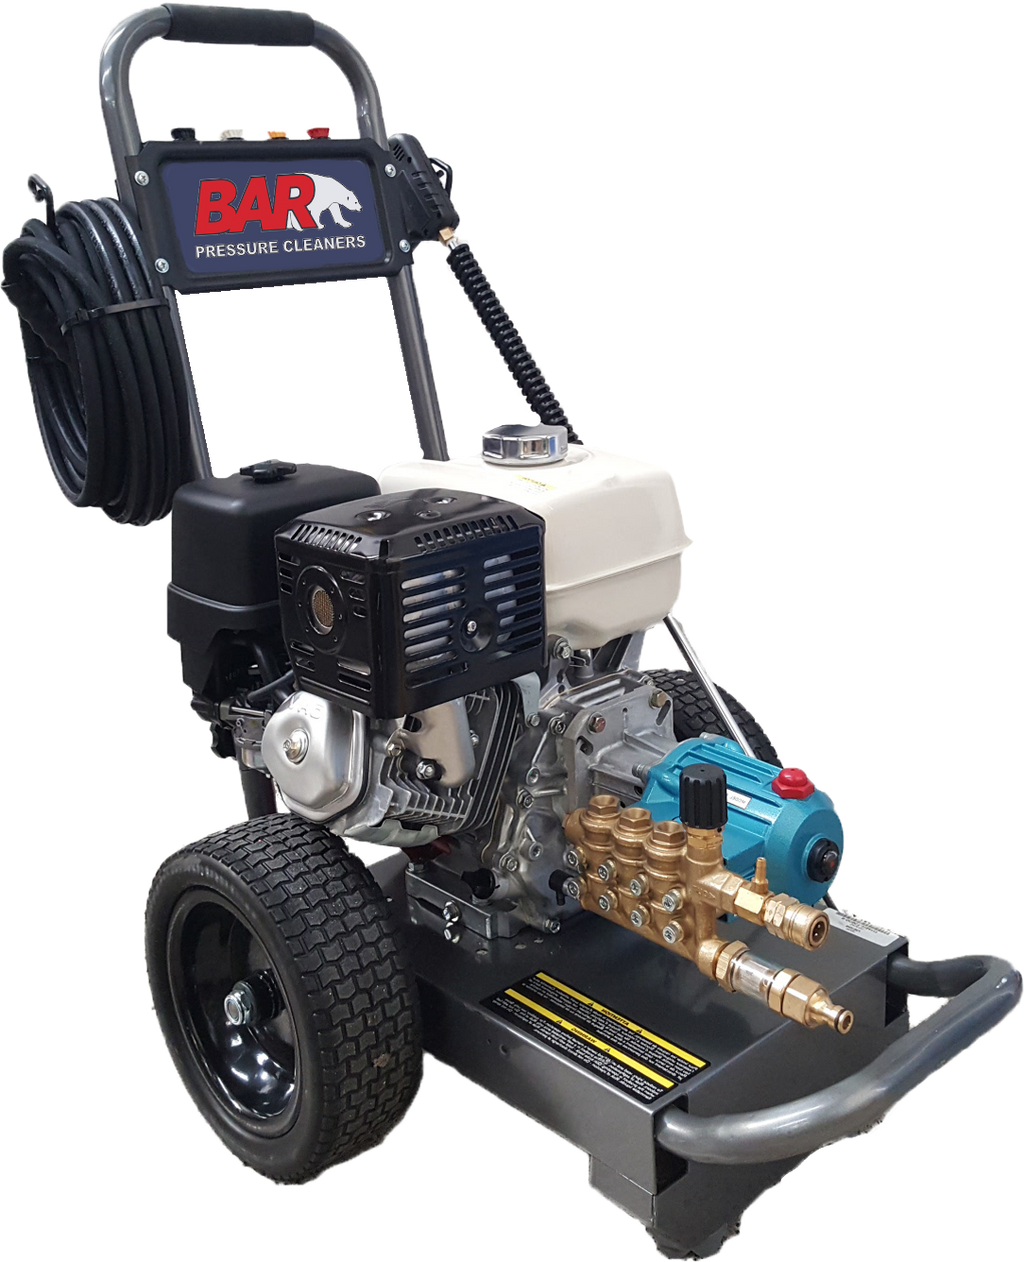 BE Honda Pressure Cleaner 4200 PSI @ 15 Litres per Minute-New Equipment-SES Direct Ltd